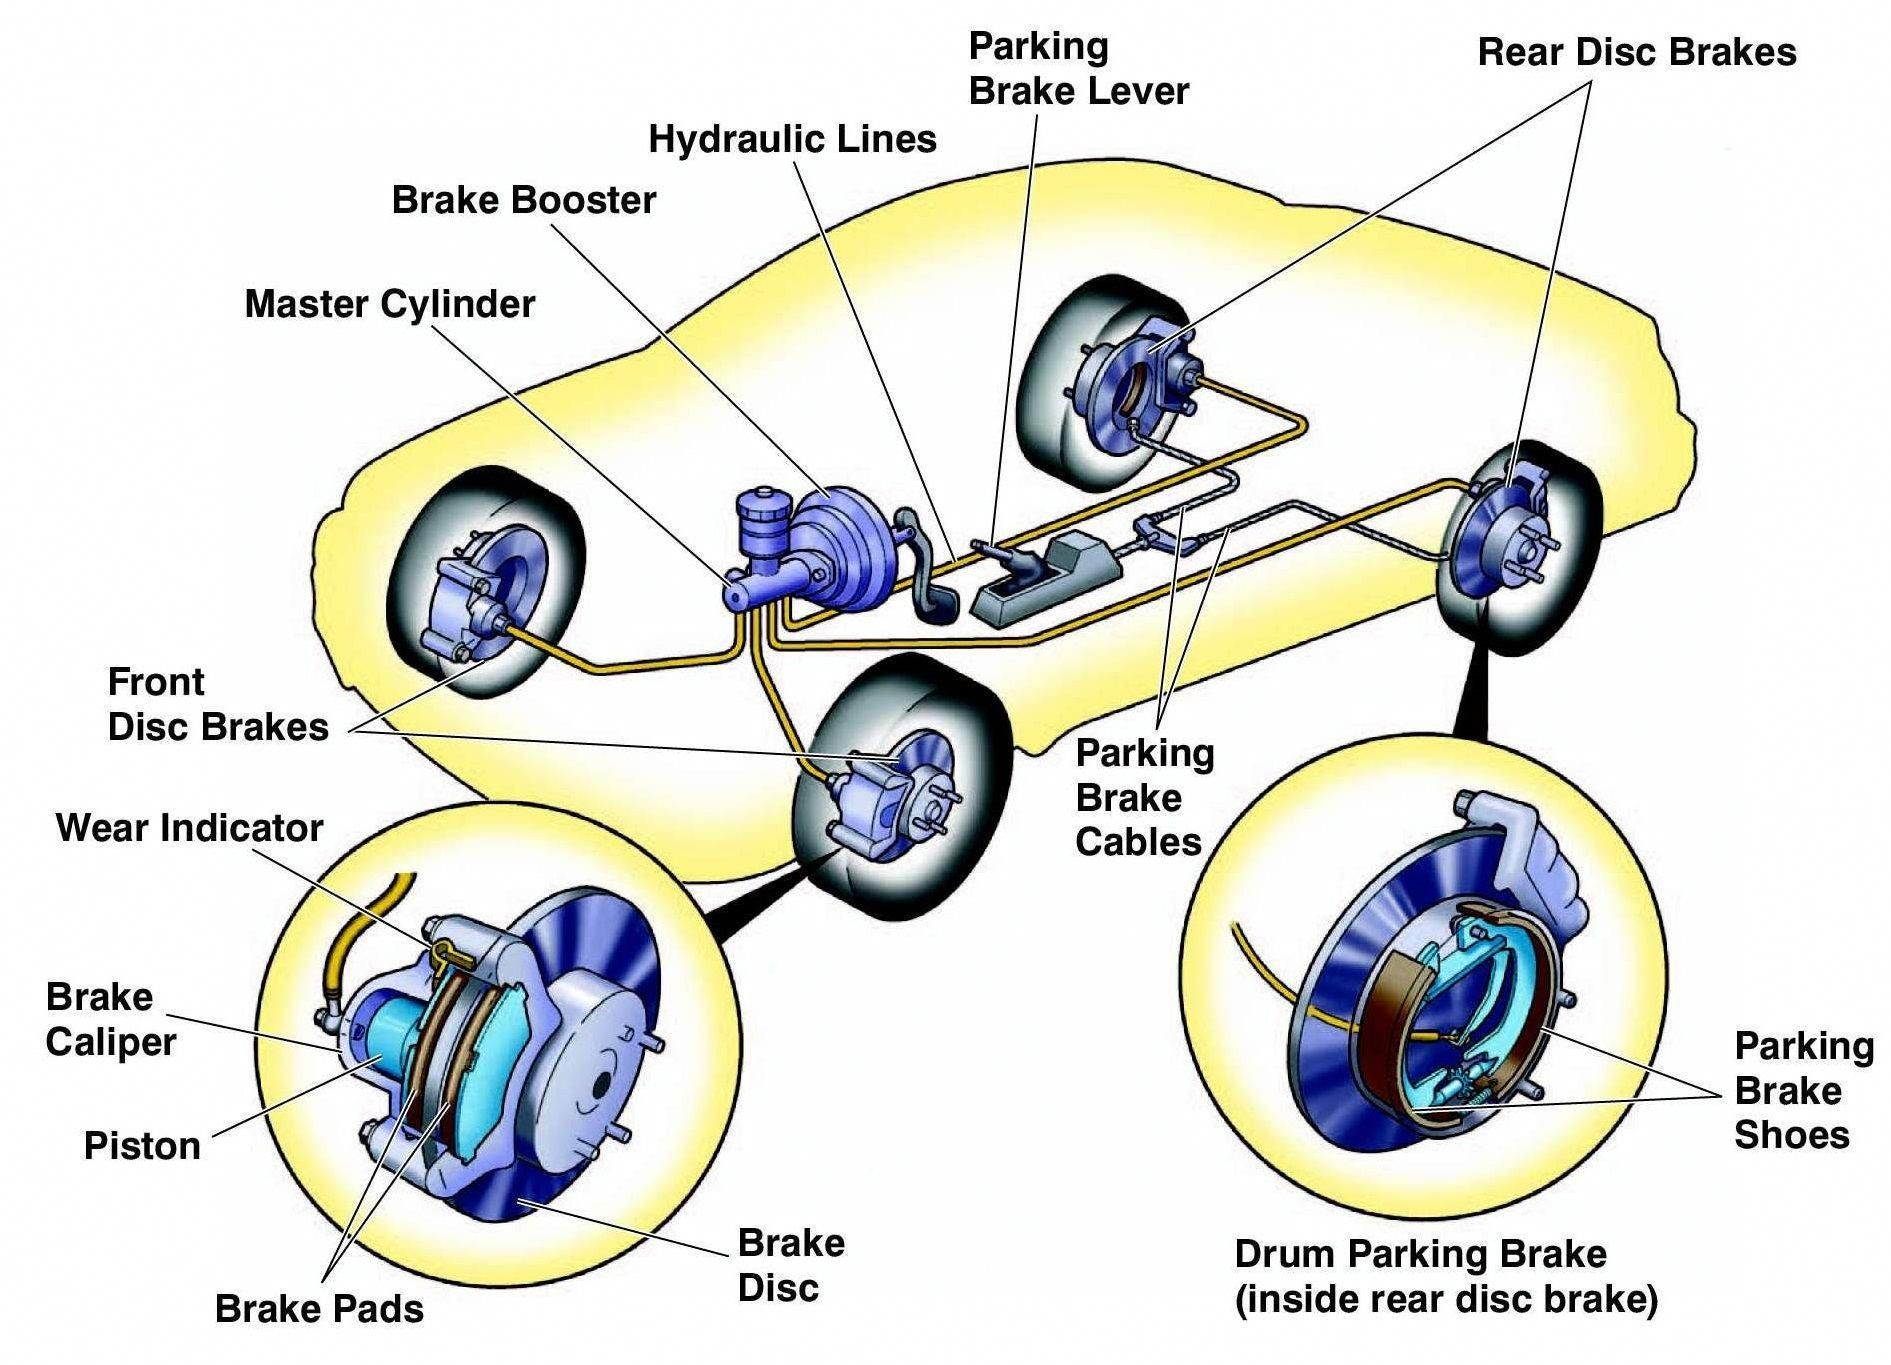 Basic Car Parts Diagram Pin by Twenty Four Diagnostics On Car Care Repair and Maintenance Of Basic Car Parts Diagram